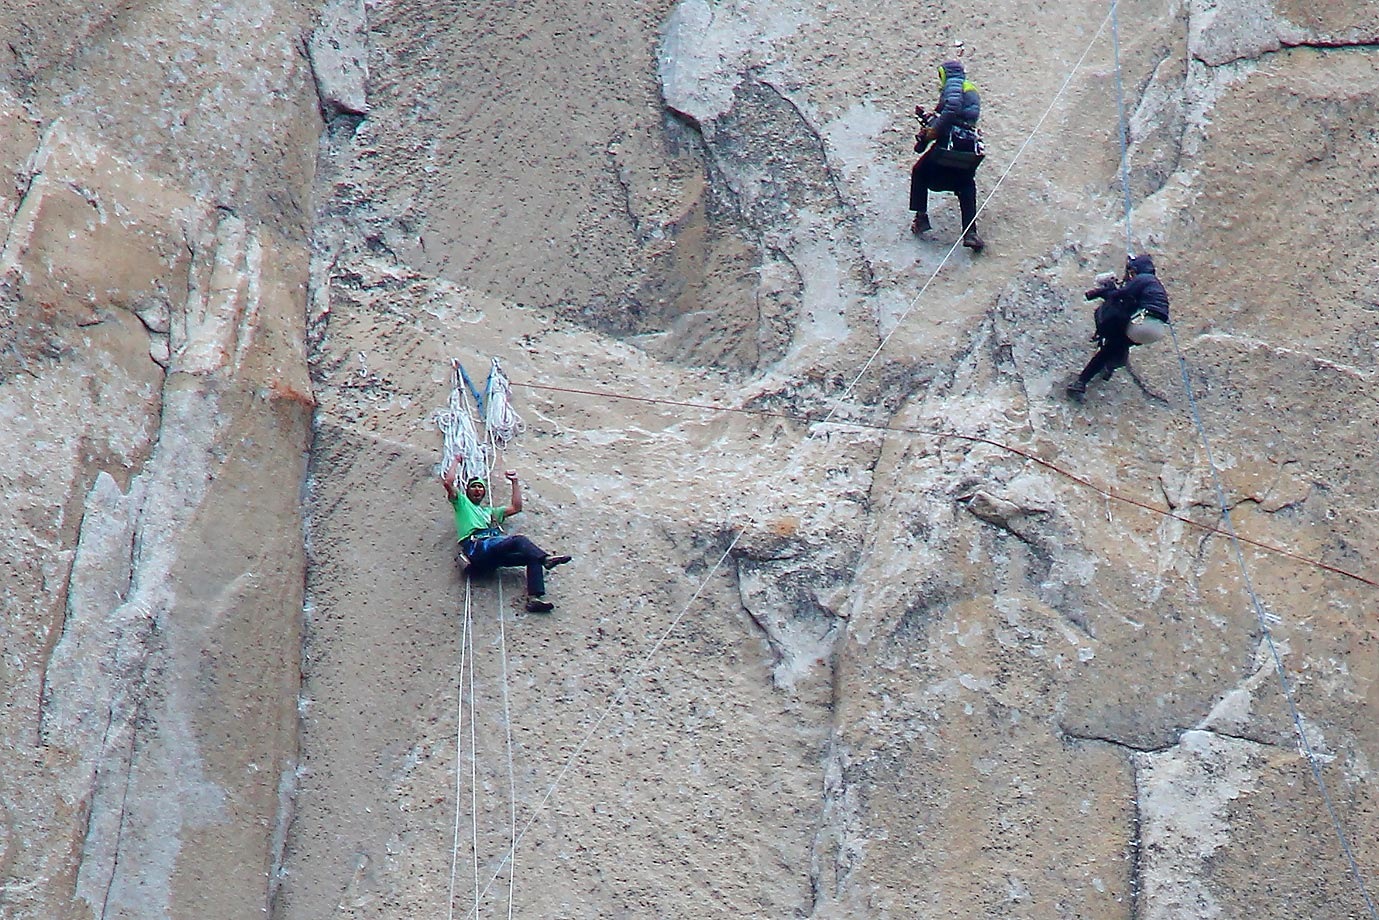 Kevin Jorgeson (in green) celebrating his finish of Pitch 15 while two cameramen shoot video and stills from above.